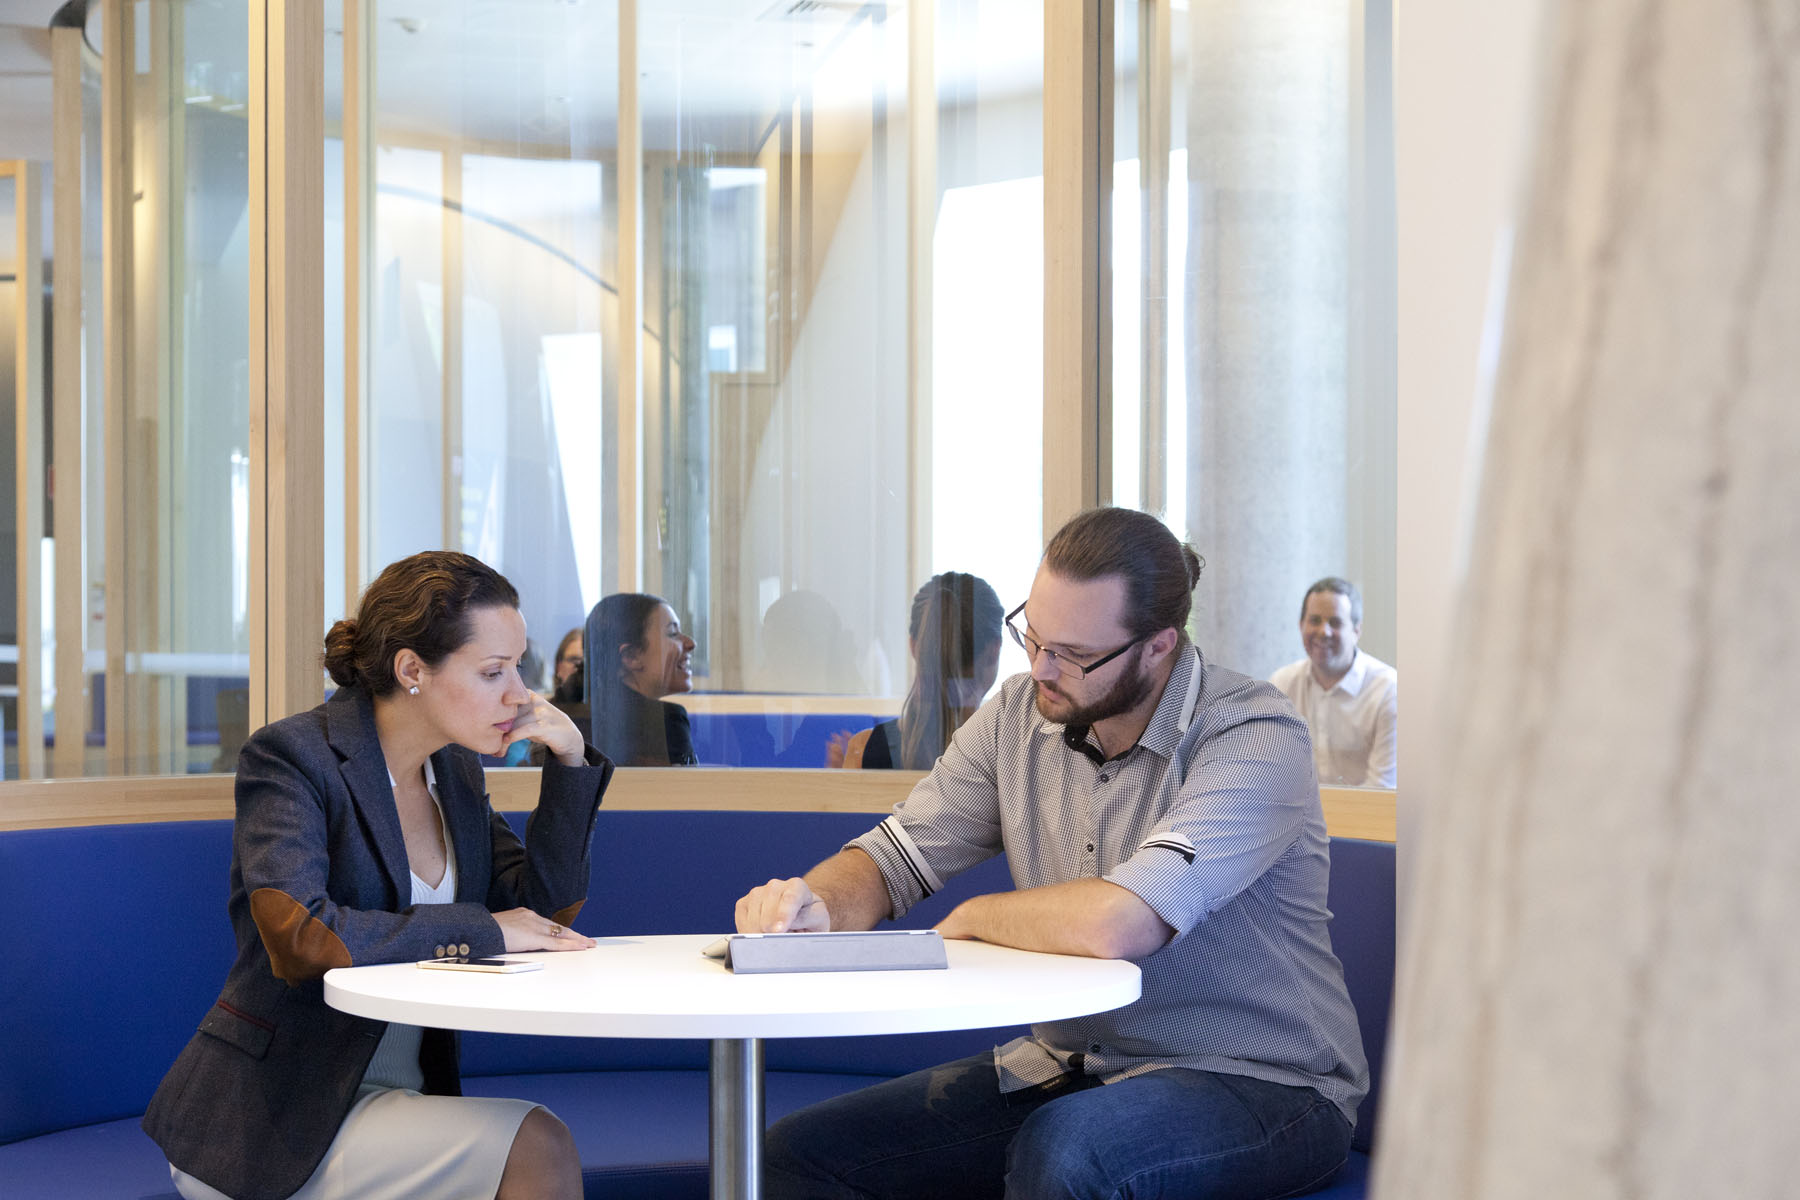 A large student commons on level 5 is a practical and inviting place for students to study and relax. It features two glass work pods – one semi-circular and the other oval-shaped – and curvaceous ply joinery that provides plentiful perimeter seating.